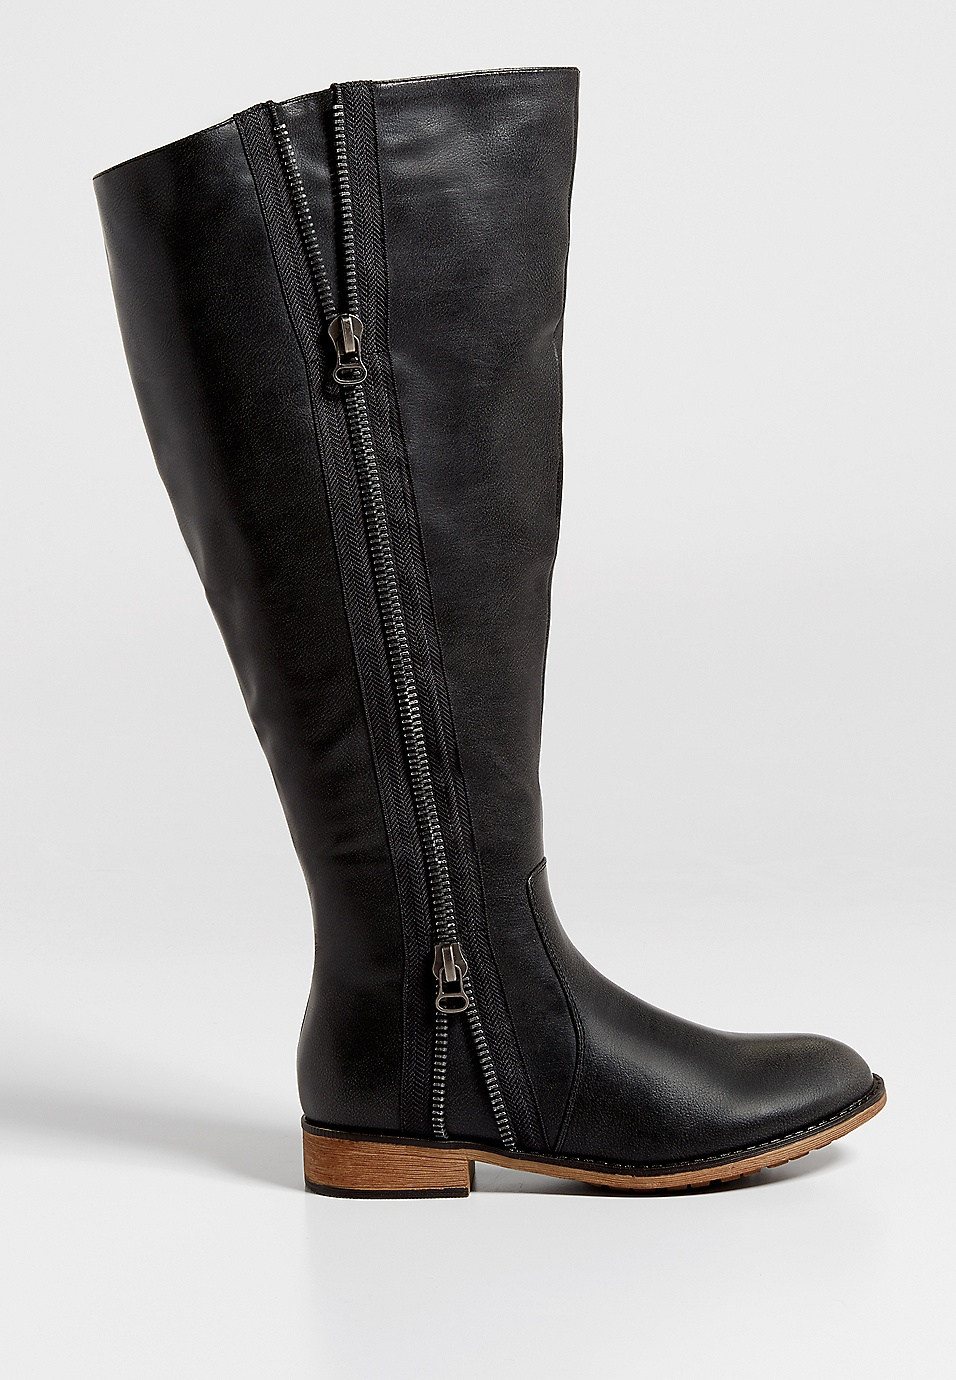 003626b10c45 Lisa extra wide calf boot with side zipper   maurices